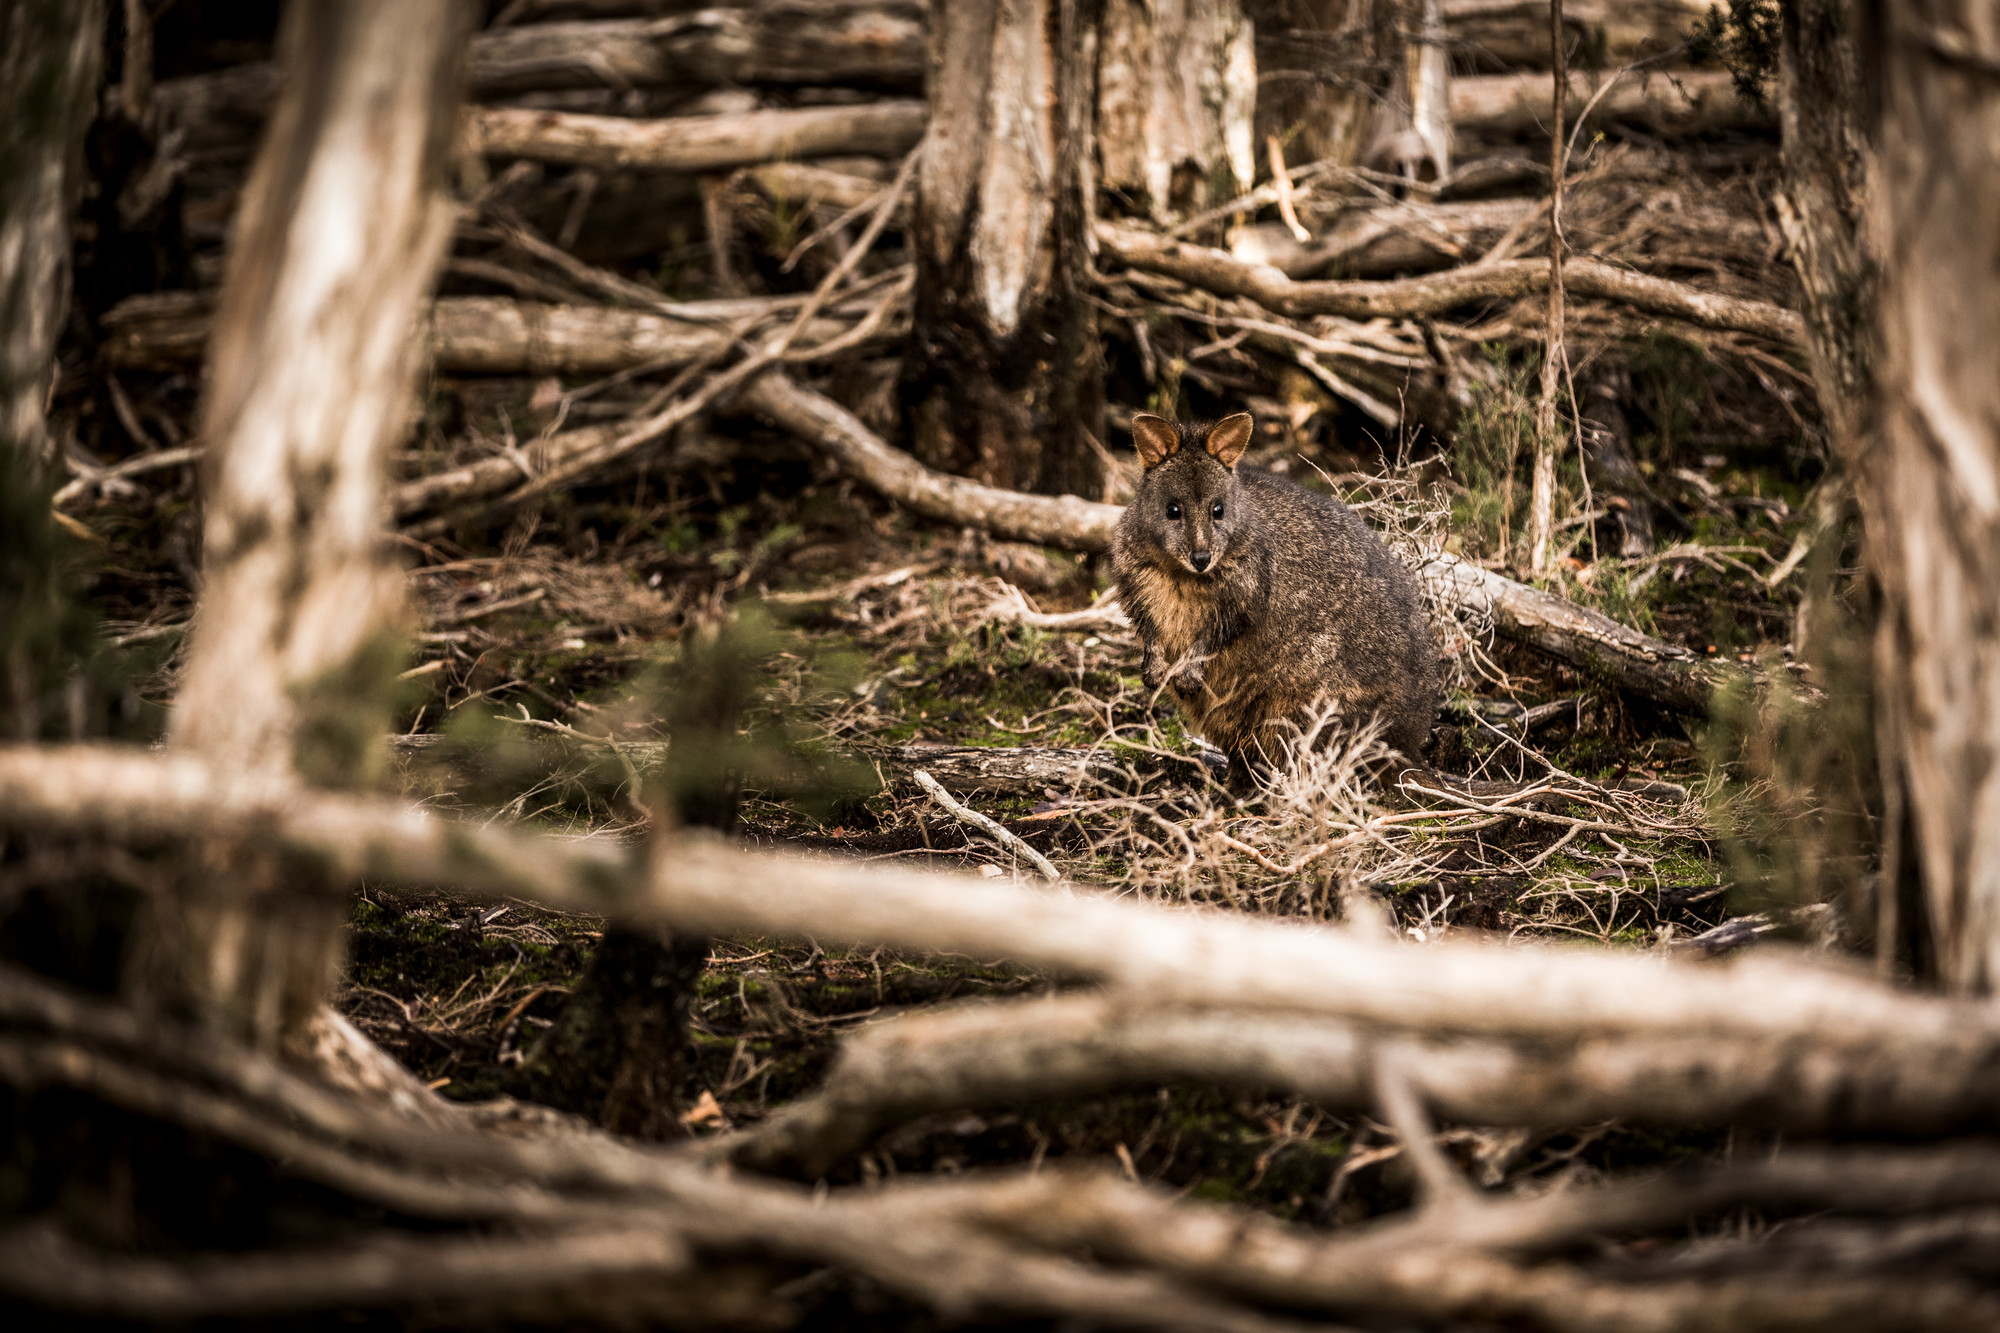 Tasmanian pademelon (Thylogale billardierii) between paperbark trees, Narawantapu National Park Bird Hide Walk.